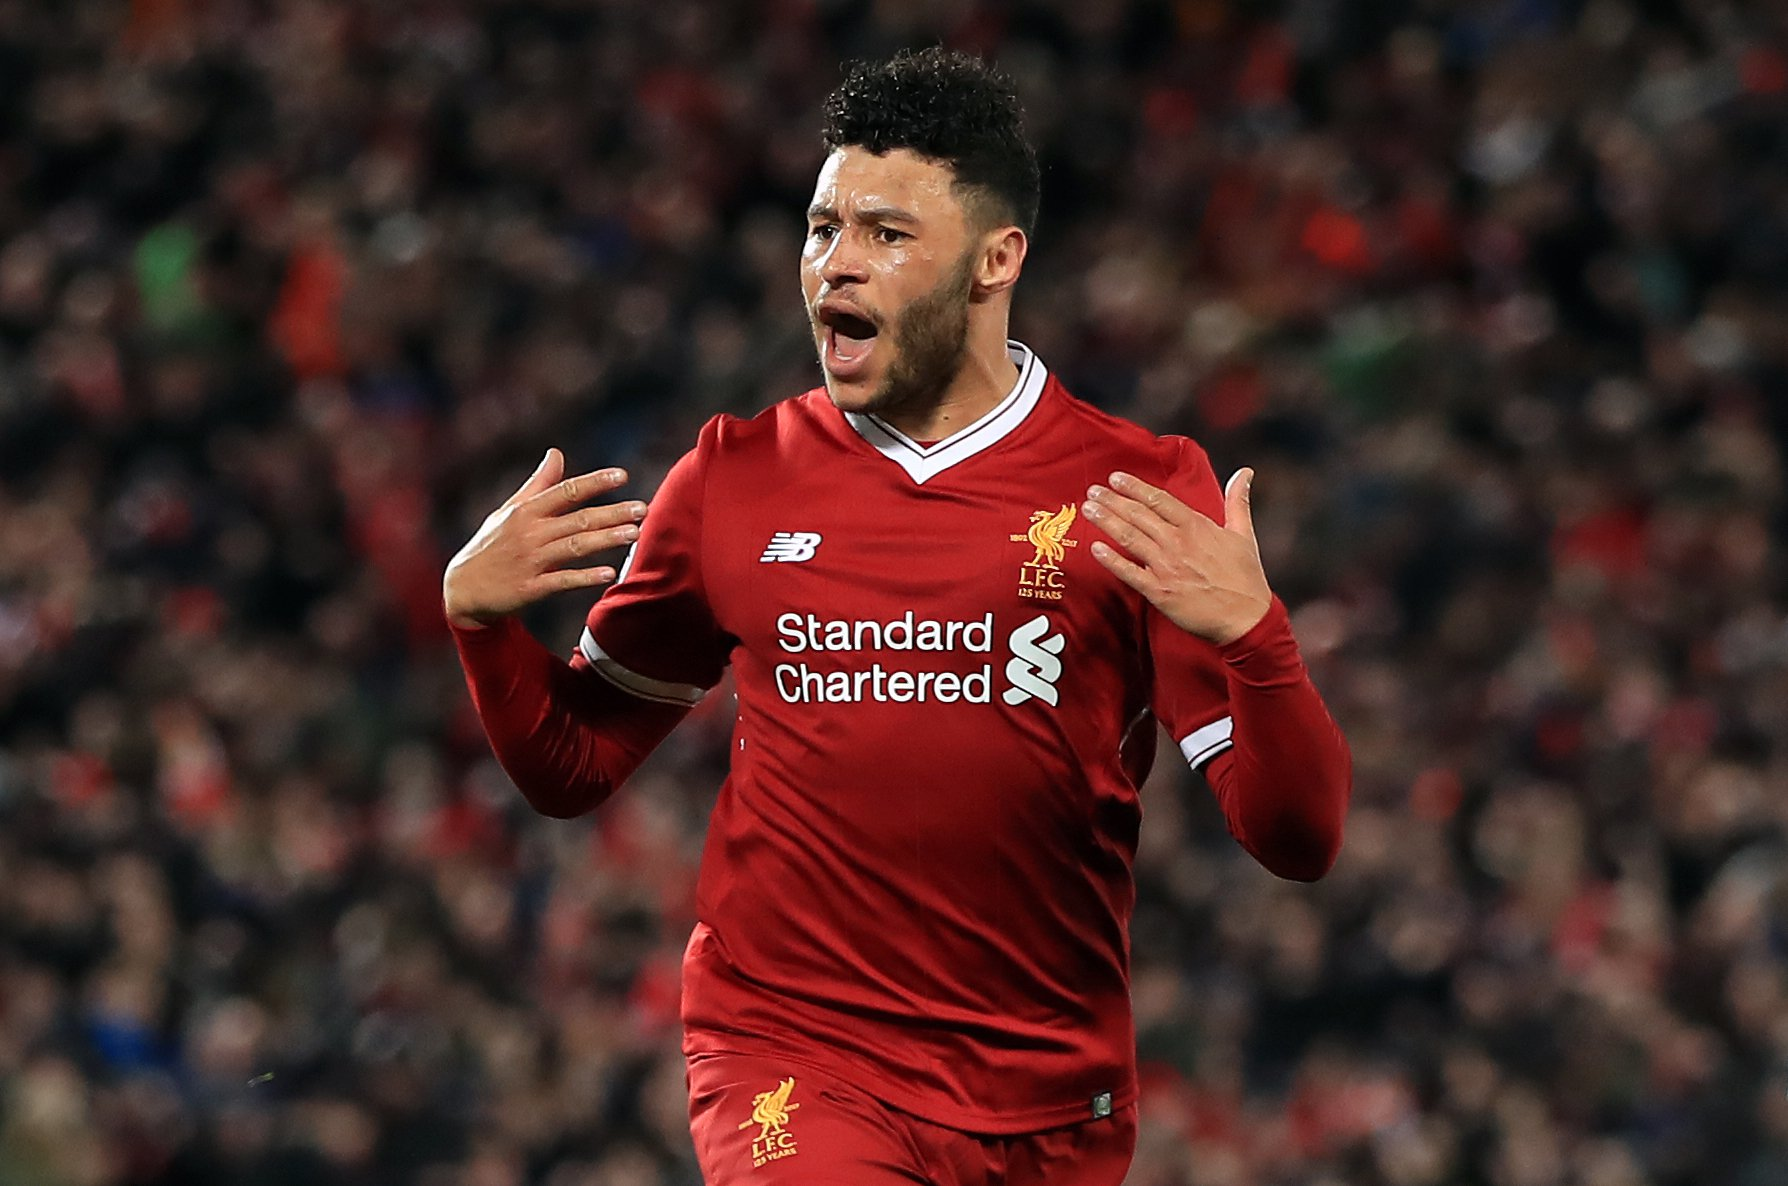 Liverpool's Alex Oxlade-Chamberlain celebrates scoring his side's second goal of the game during the UEFA Champions League quarter final, first leg match at Anfield, Liverpool. PRESS ASSOCIATION Photo. Picture date: Wednesday April 4, 2018. See PA story SOCCER Liverpool. Photo credit should read: Peter Byrne/PA Wire